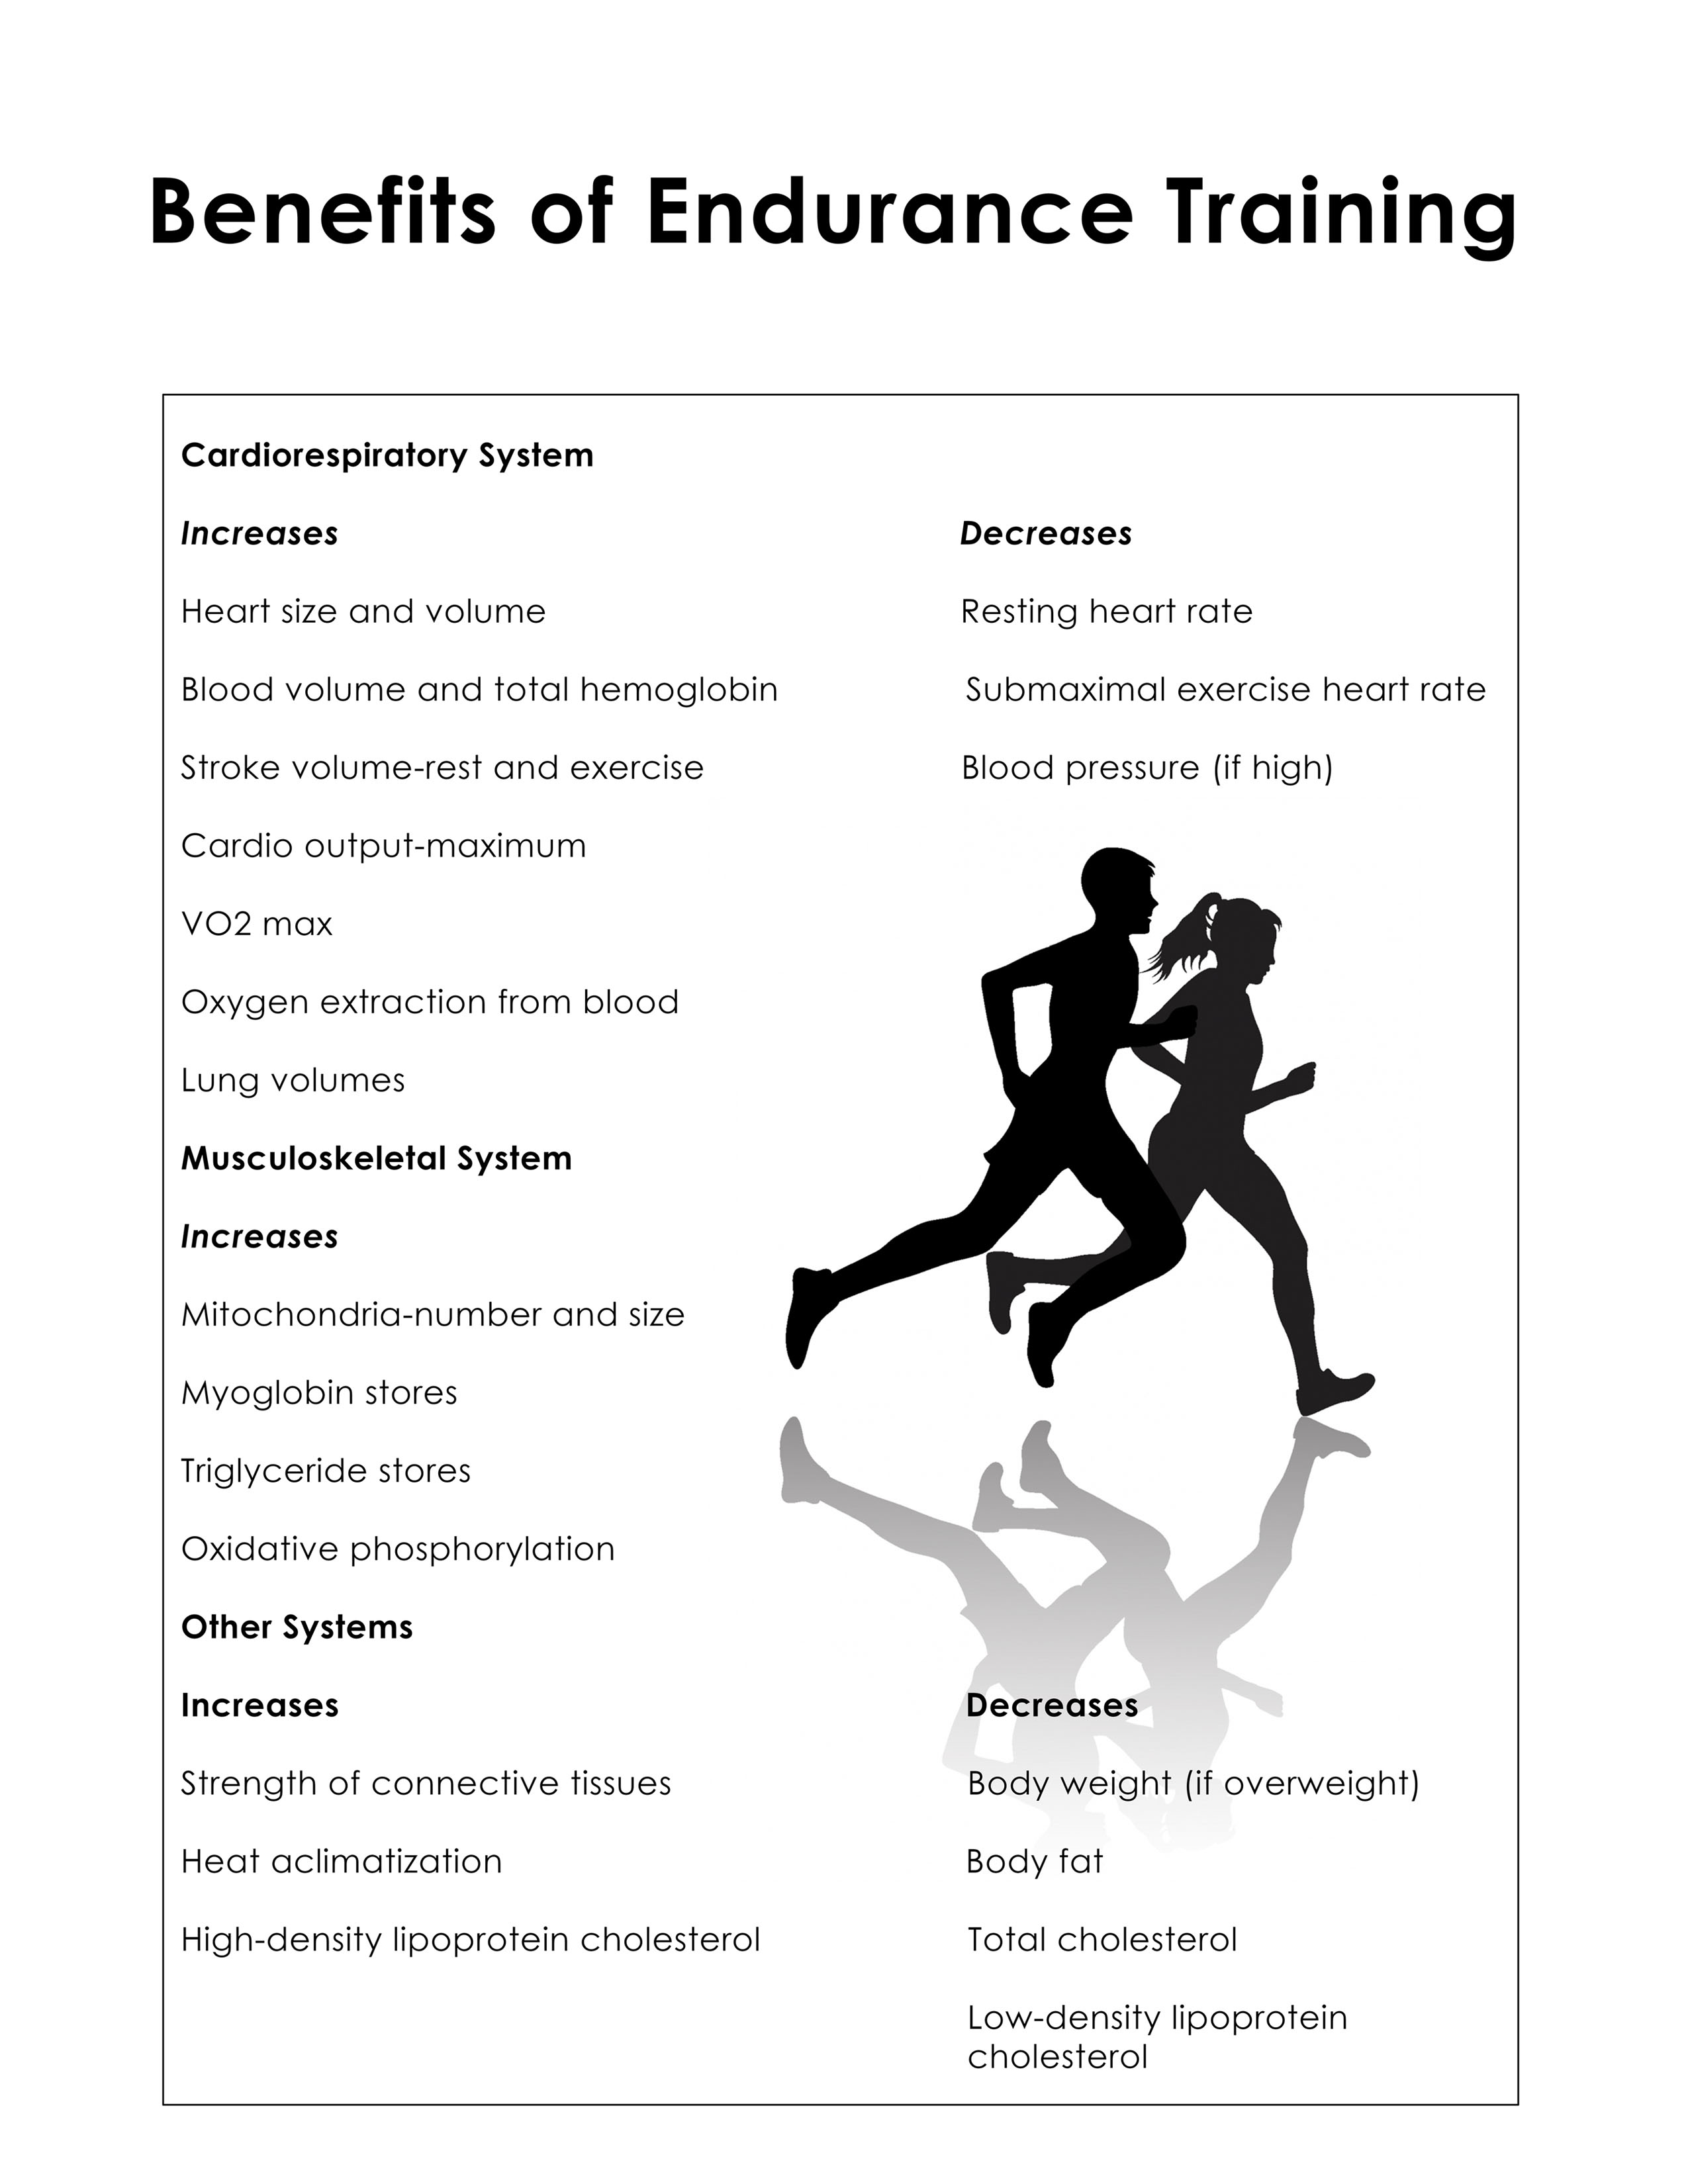 Benefits of endurance training small poster.